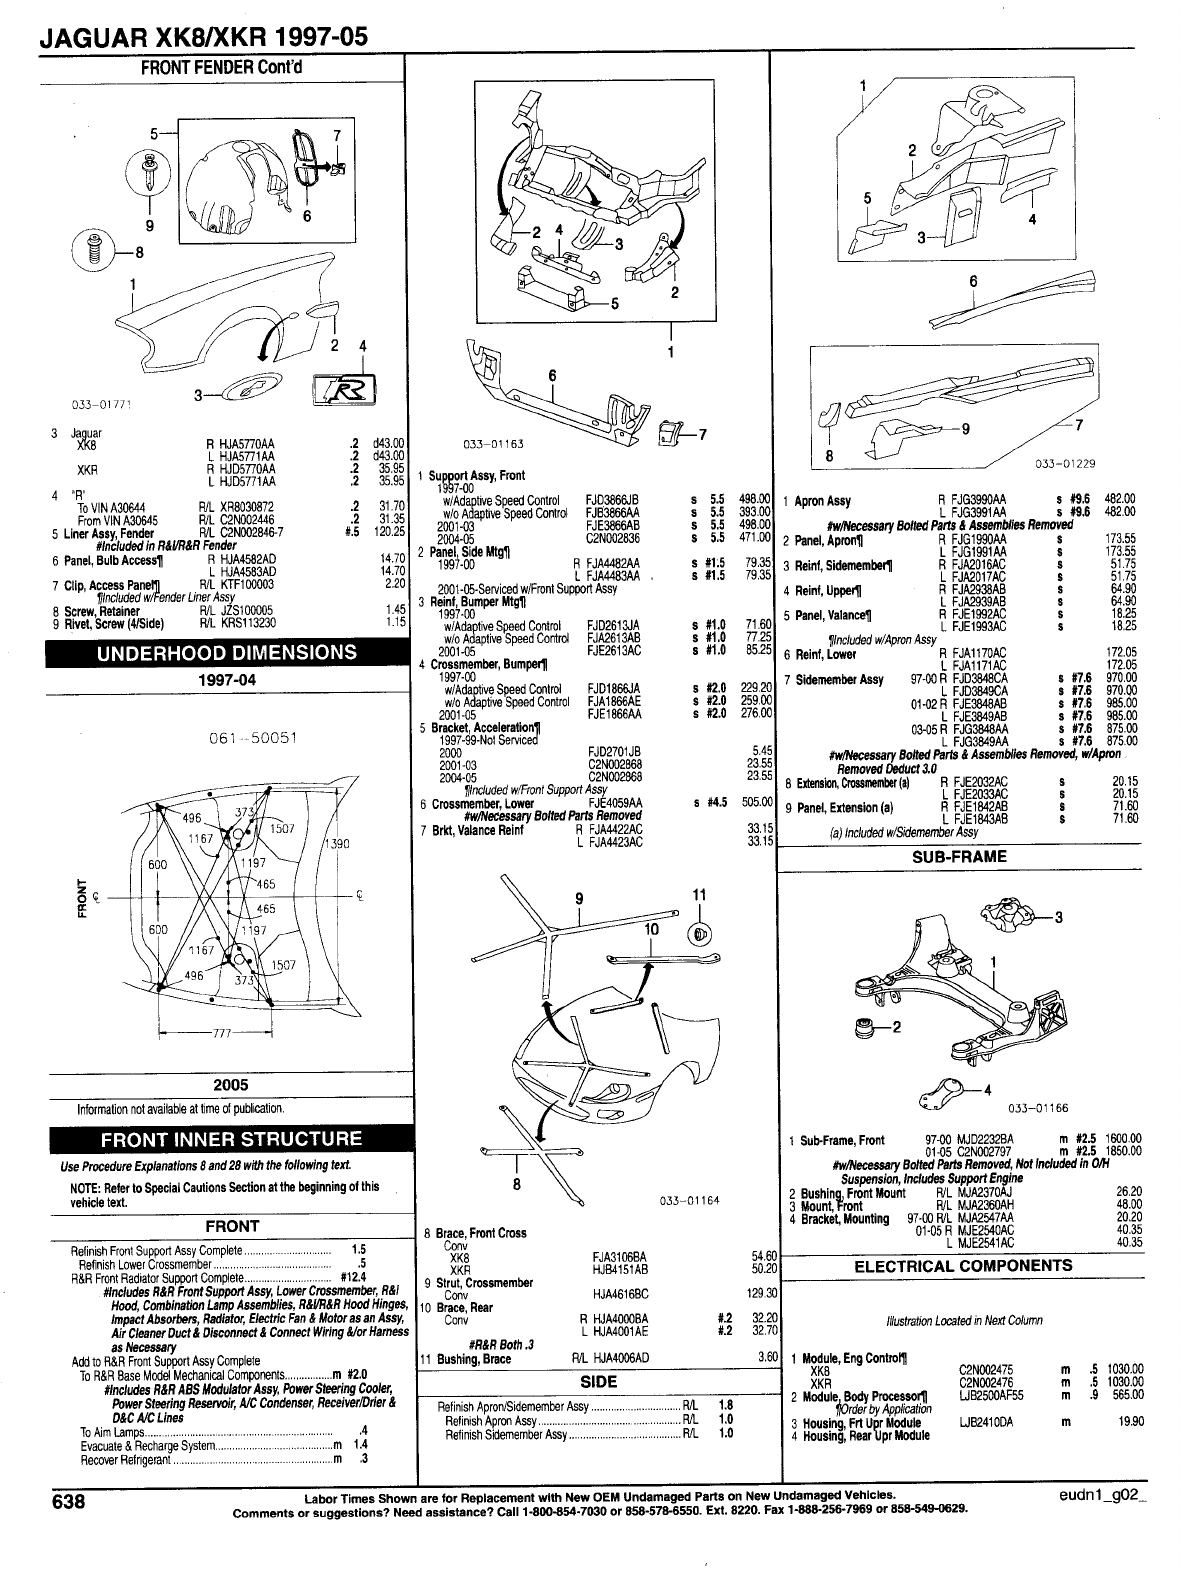 Jaguar XKR 1997 2005 Misc. Document Jaguar Parts List.PDF PDF